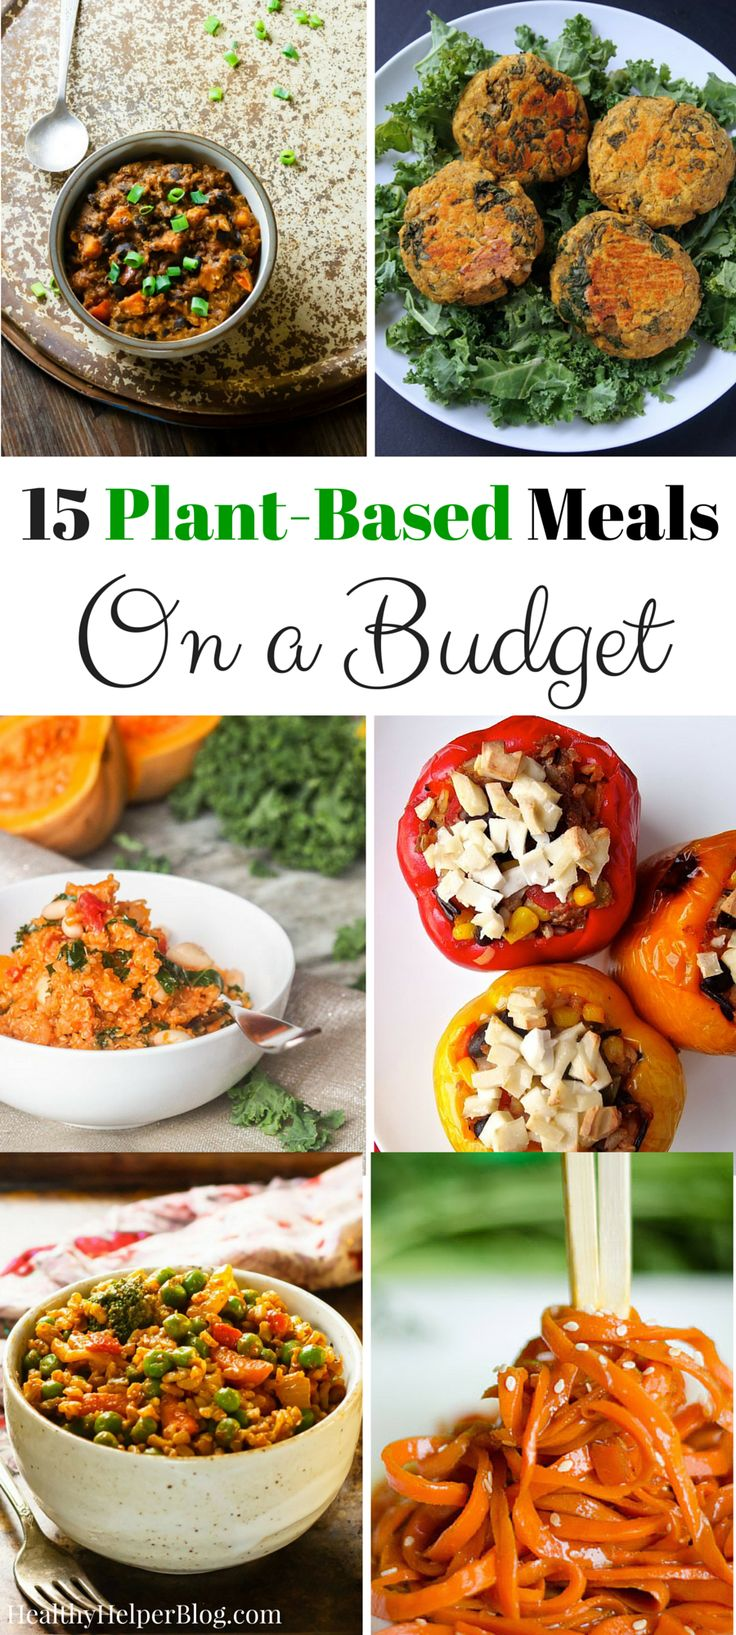 15 Plant-Based Meals on a Budget from Healthy Helper...vegan and vegetarian meals the whole family will love!